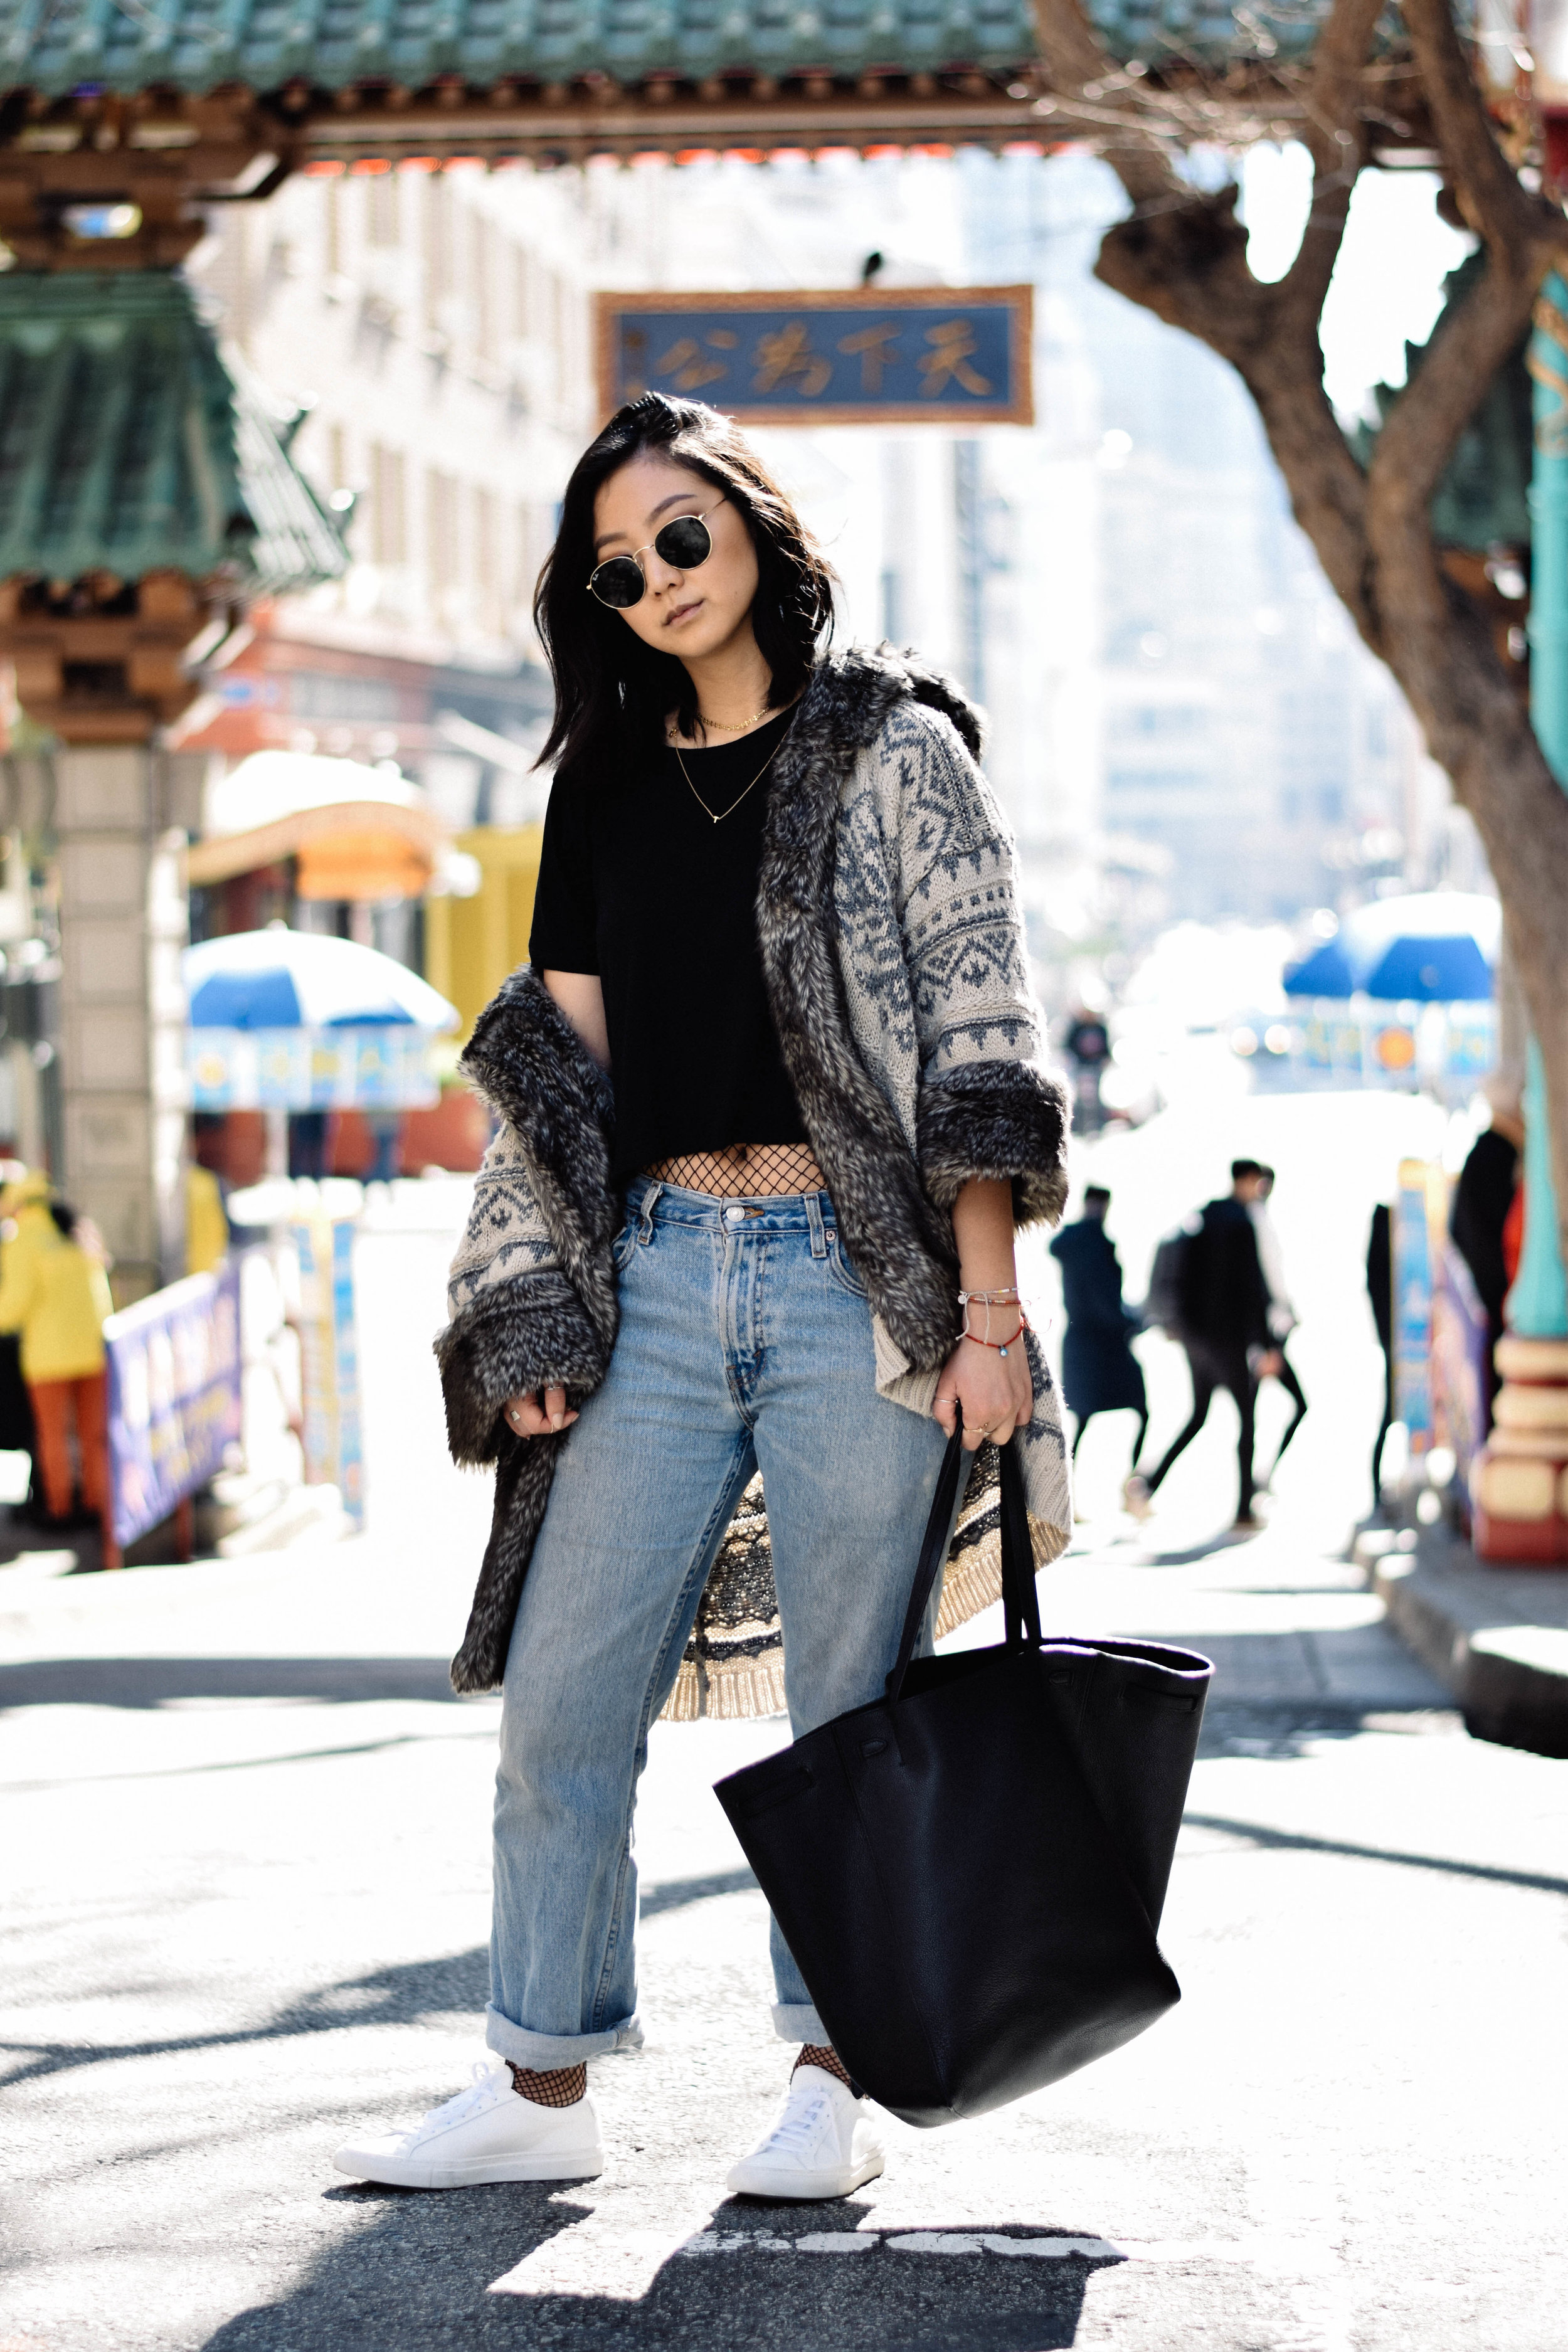 ZARA  sweater / ZARA  crop tee  / ASOS  fishnet stockings / LEVI's   jeans   / COMMON PROJECTS  sneakers  / CELINE  cabas tote  / RAY-BAN   retro-round sunglasses